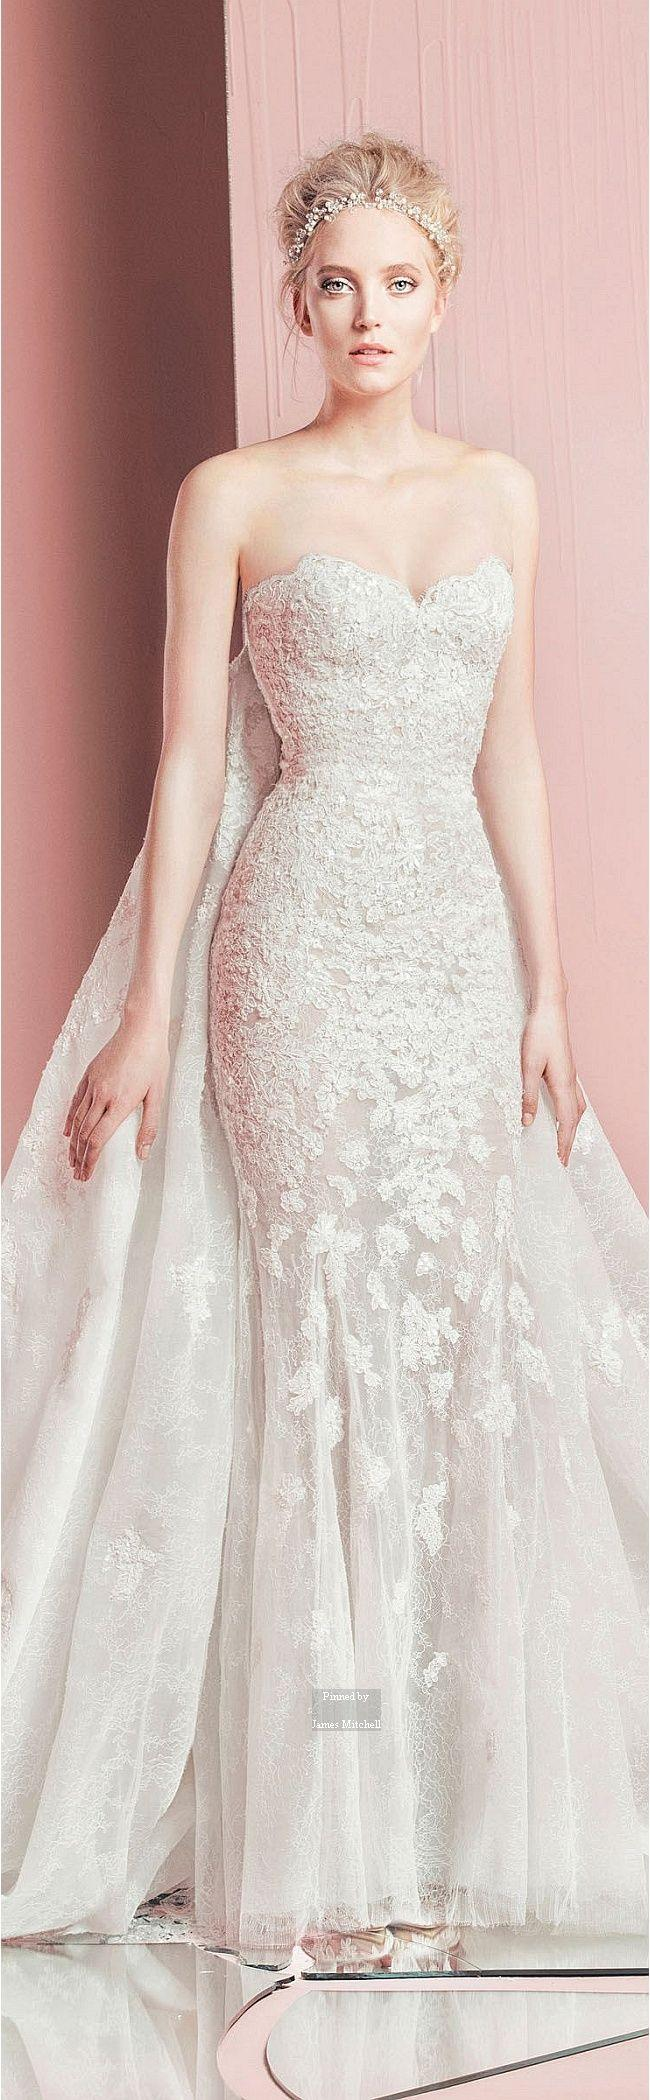 Mariage - Bridal: Dreamy Gowns